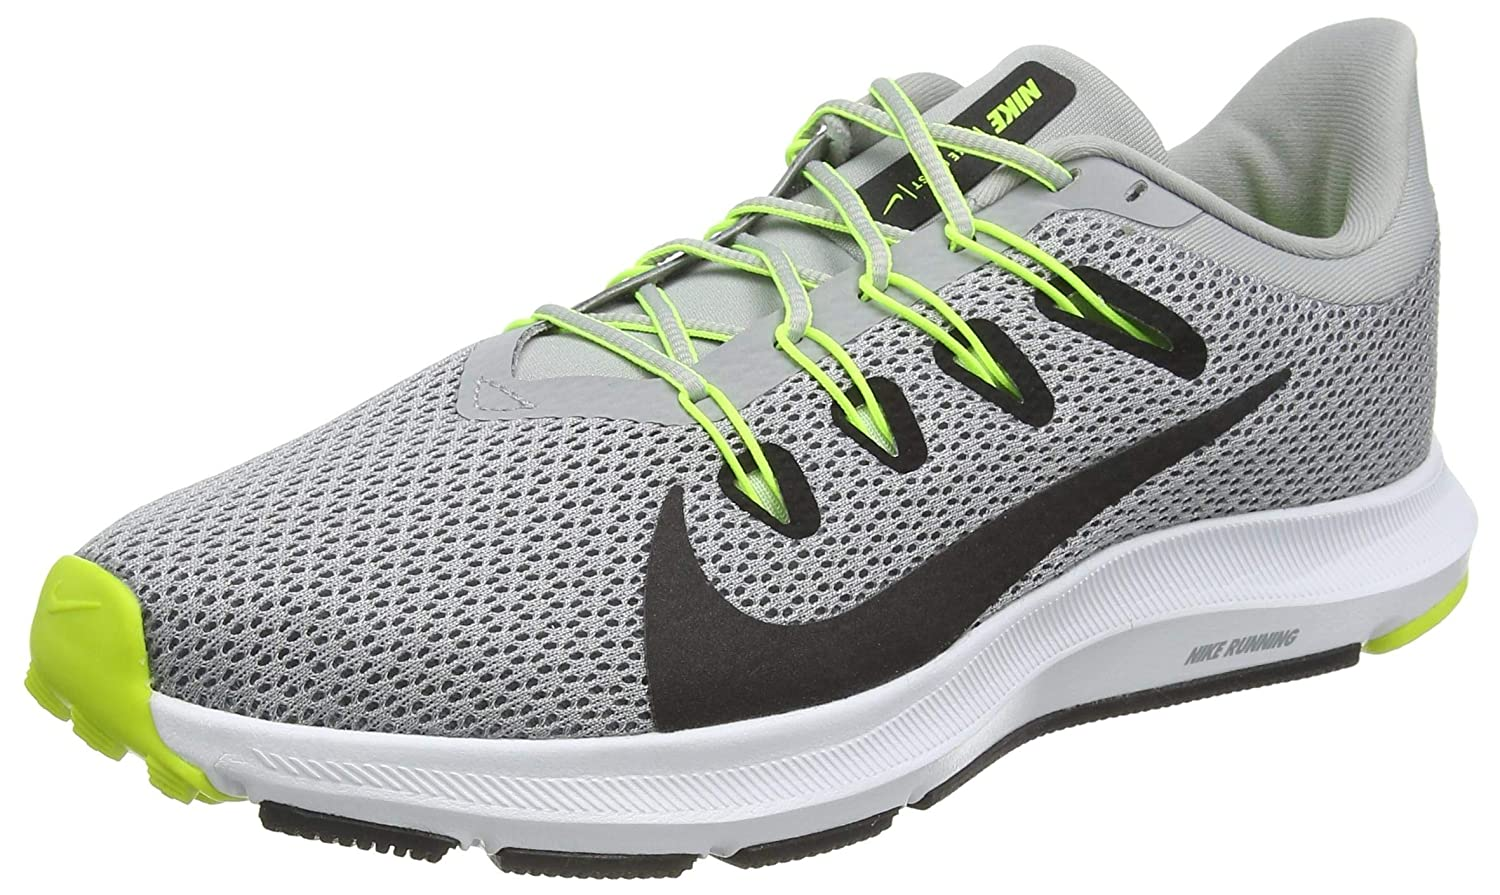 Nike Quest 2, Zapatillas de Running para Asfalto para Hombre, Multicolor (Black/Anthracite 003), 41 EU: Amazon.es: Zapatos y complementos